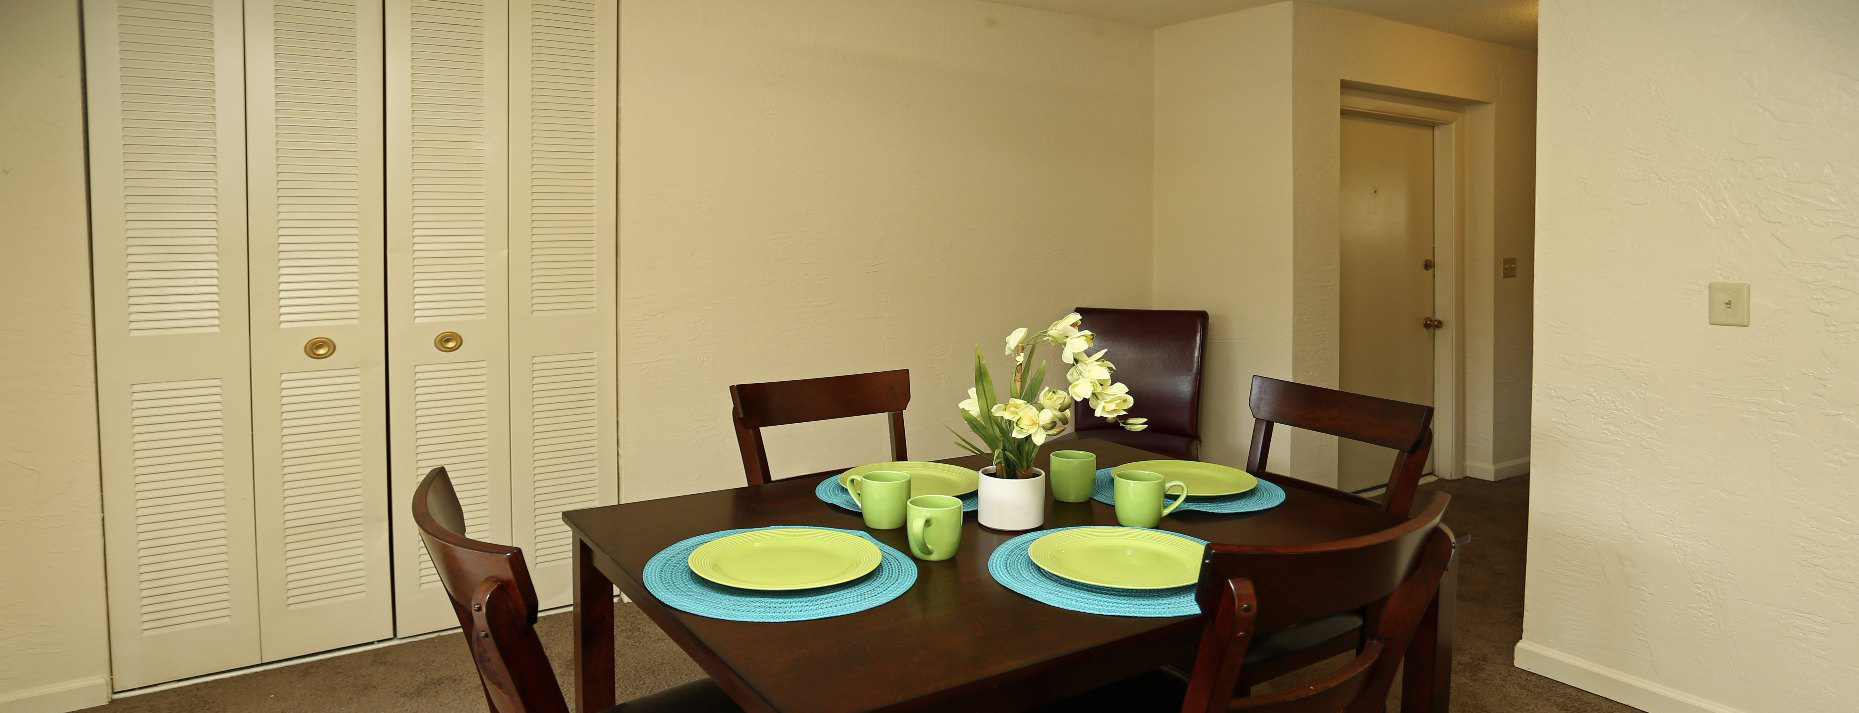 dining room with beautiful table to share with family